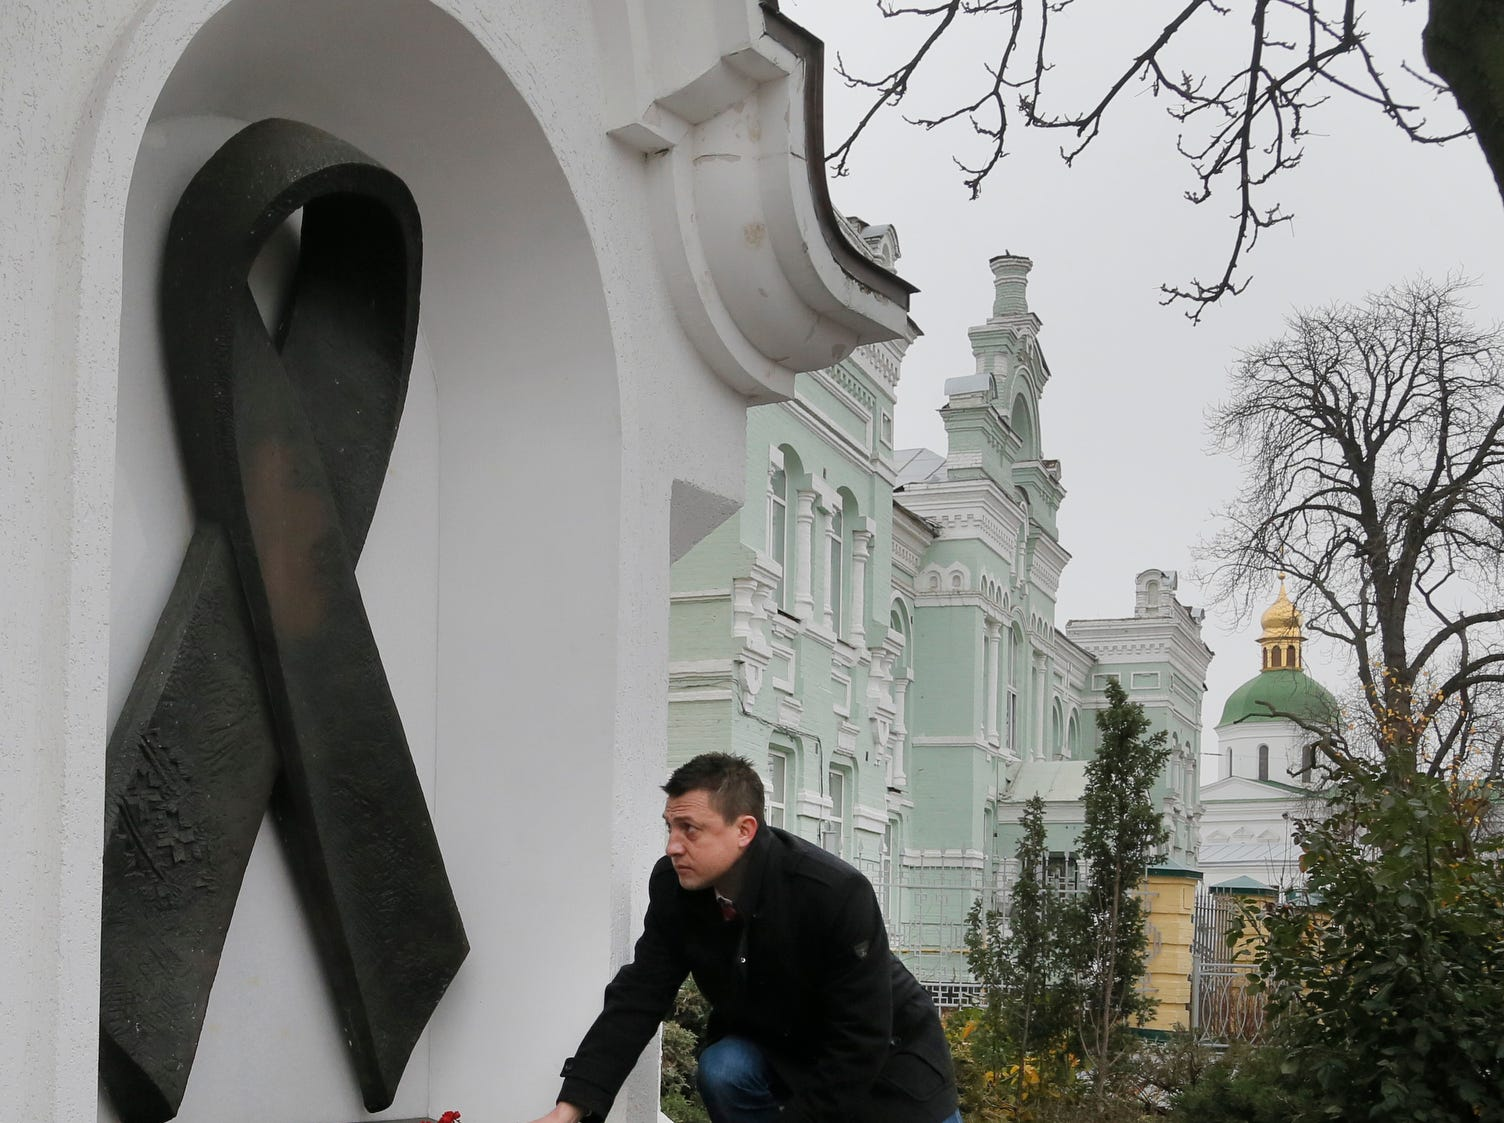 A man lays flowers at the memorial monument dedicated to AIDS victims, to mark the World AIDS Day and in memory of those who have died of AIDS in Kiev, Ukraine, on Dec. 1, 2015.